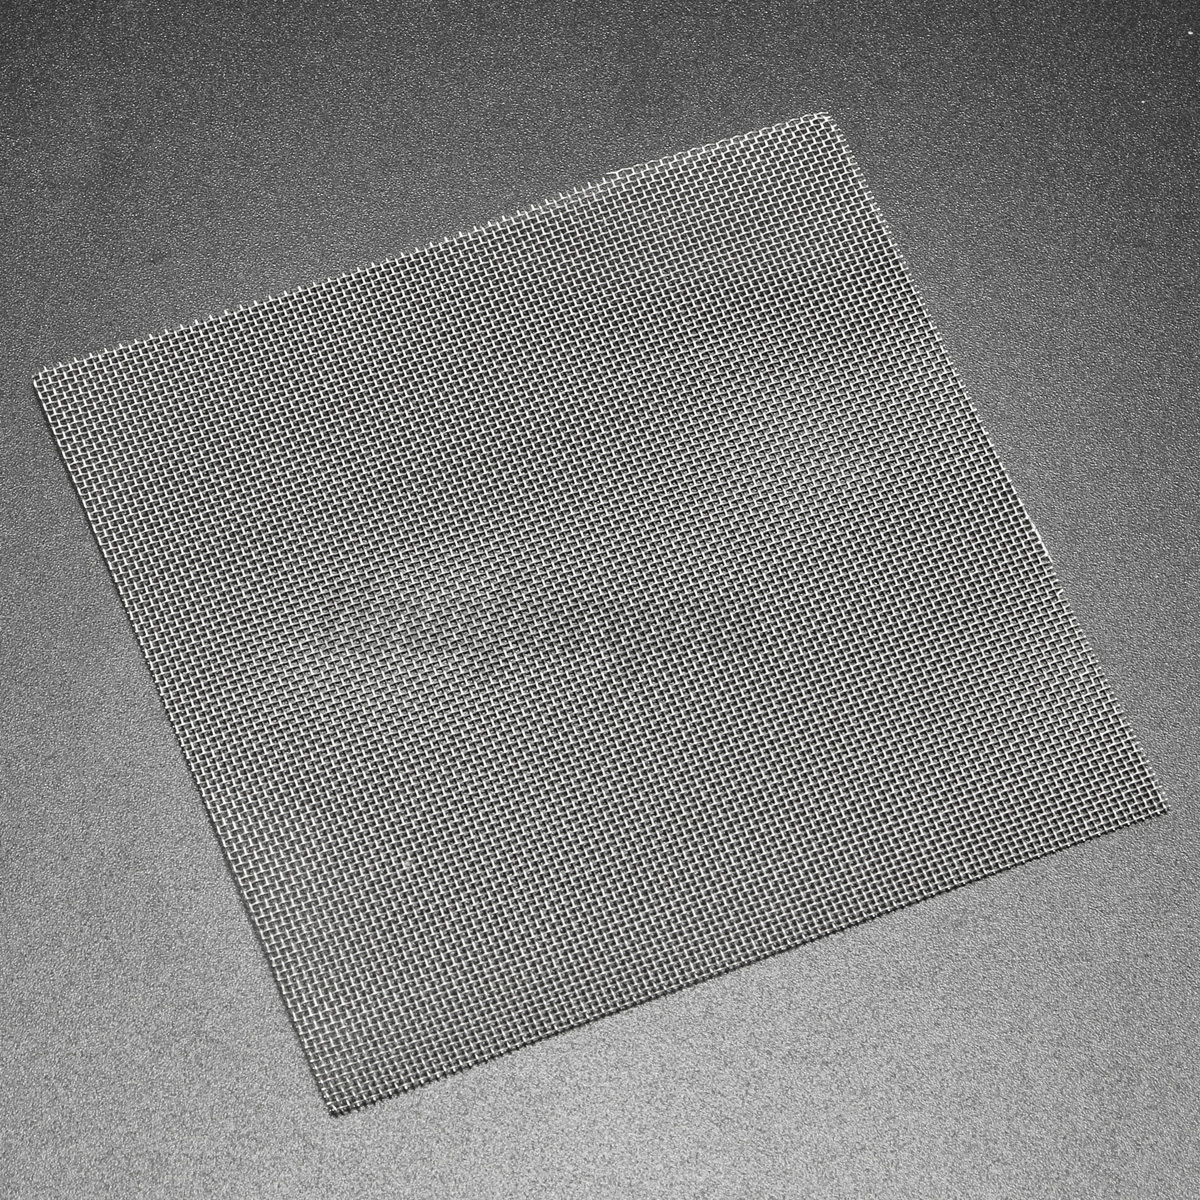 Micron stainless steel filter mesh wire cloth